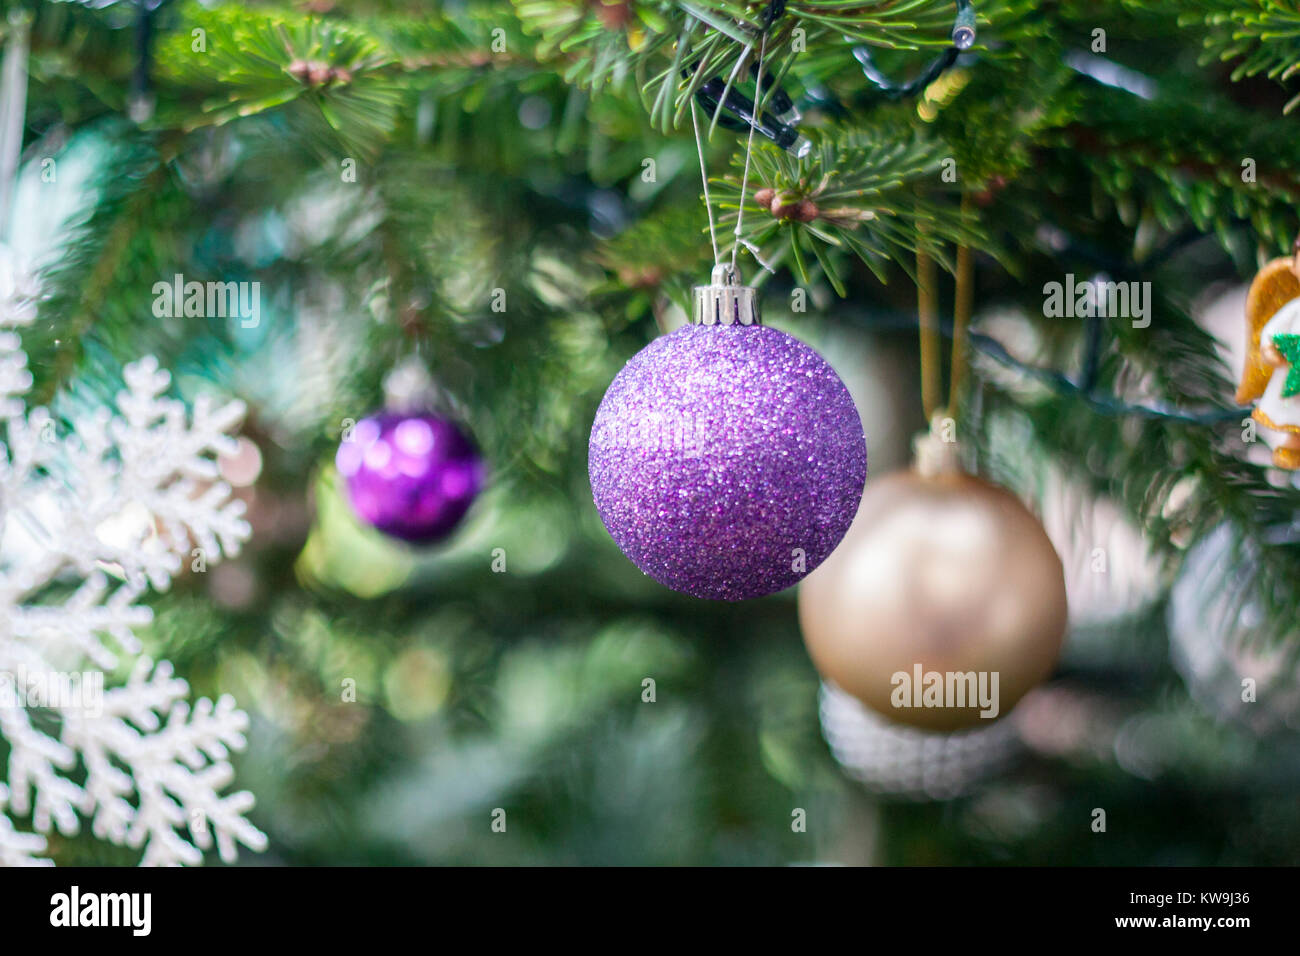 Closeup Christmas Tree Baubles Decorations Blurred Purple Gold Stock Photo Alamy